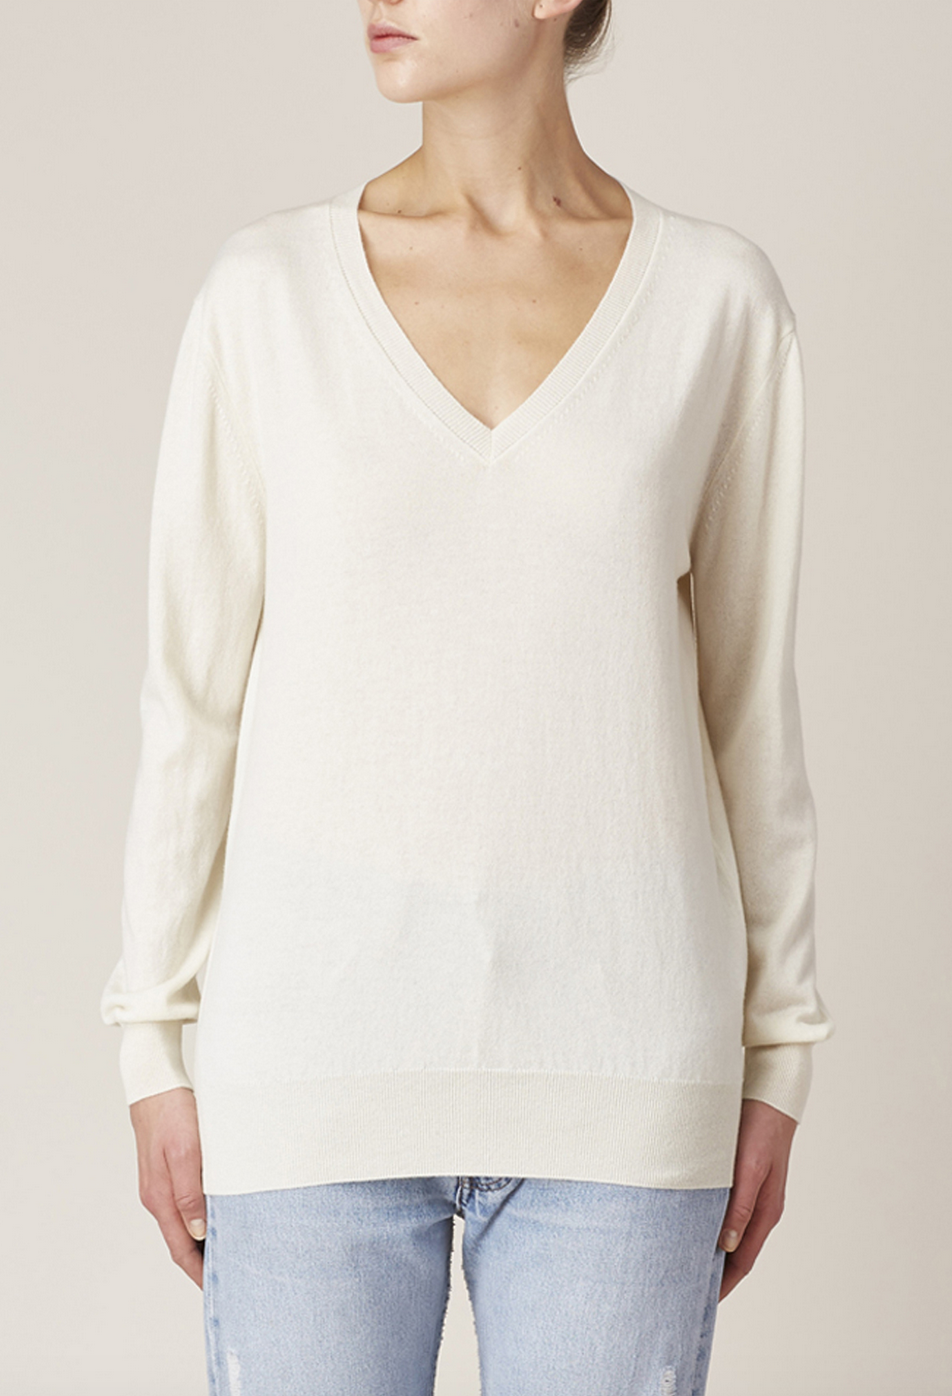 New  1390 The Row Sabry Cashmere V Neck Sweater in Ivory sz S